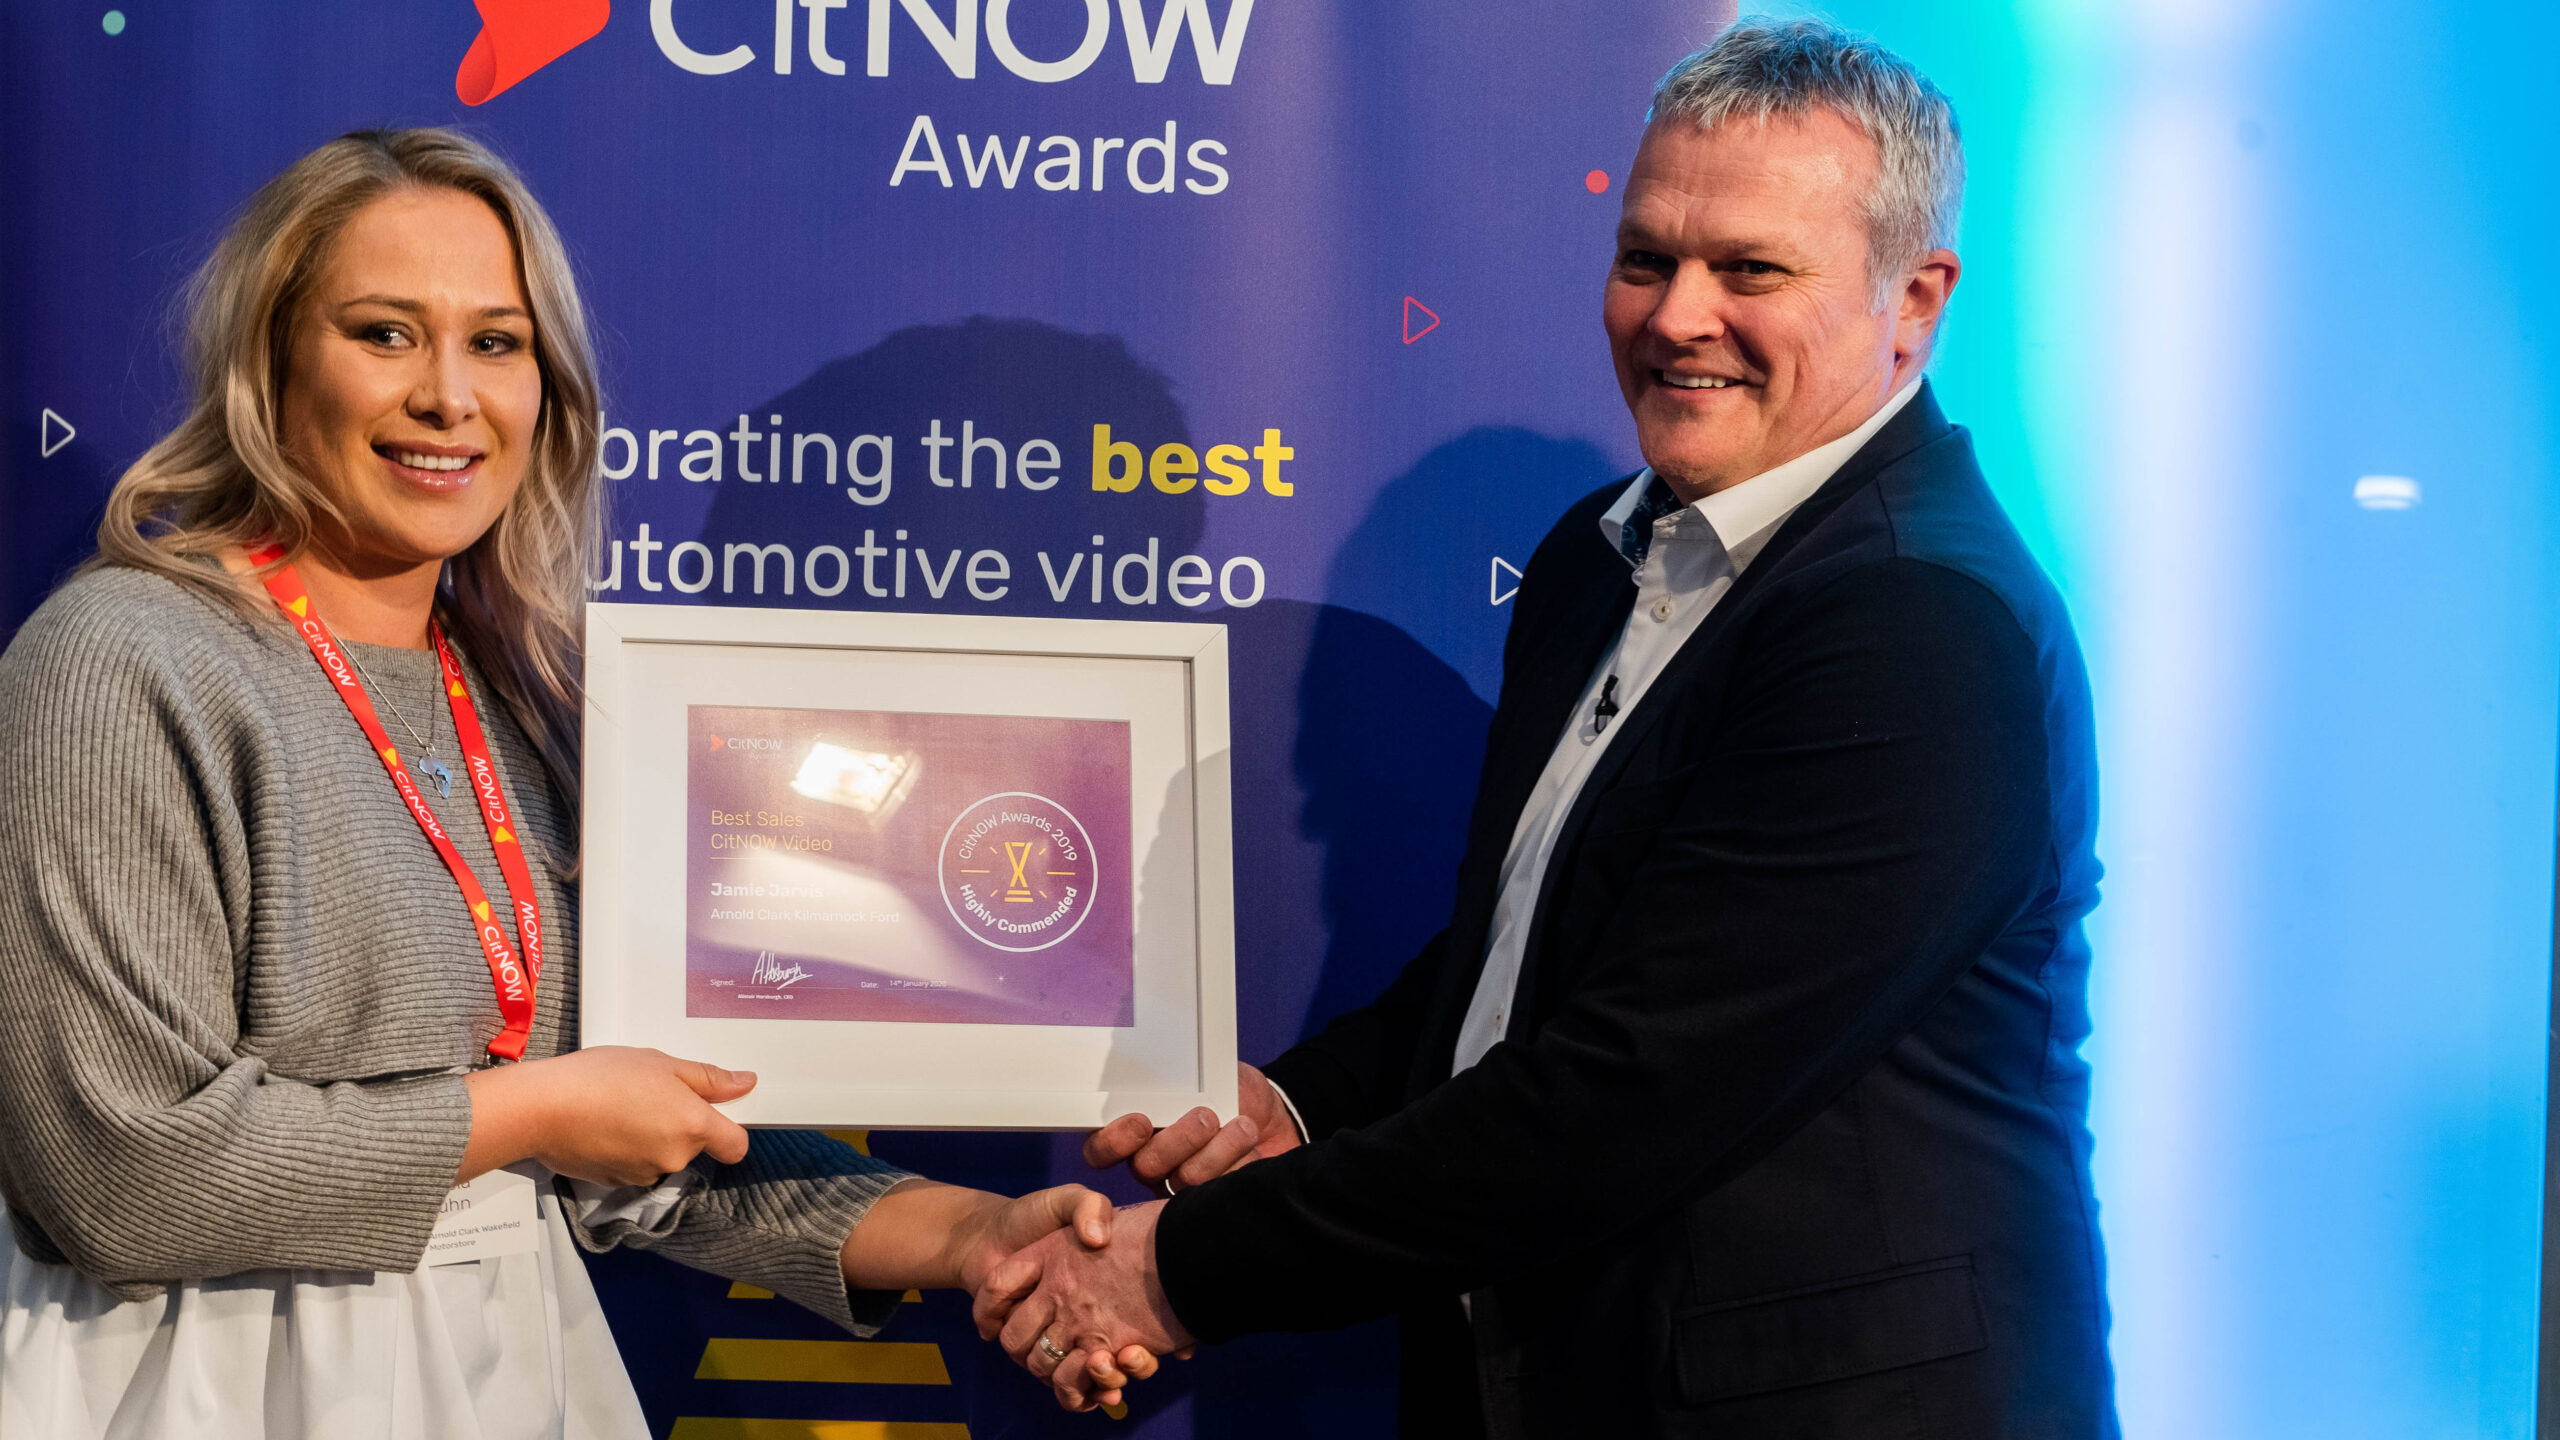 Best CitNOW Sales Video being presented by Alistair